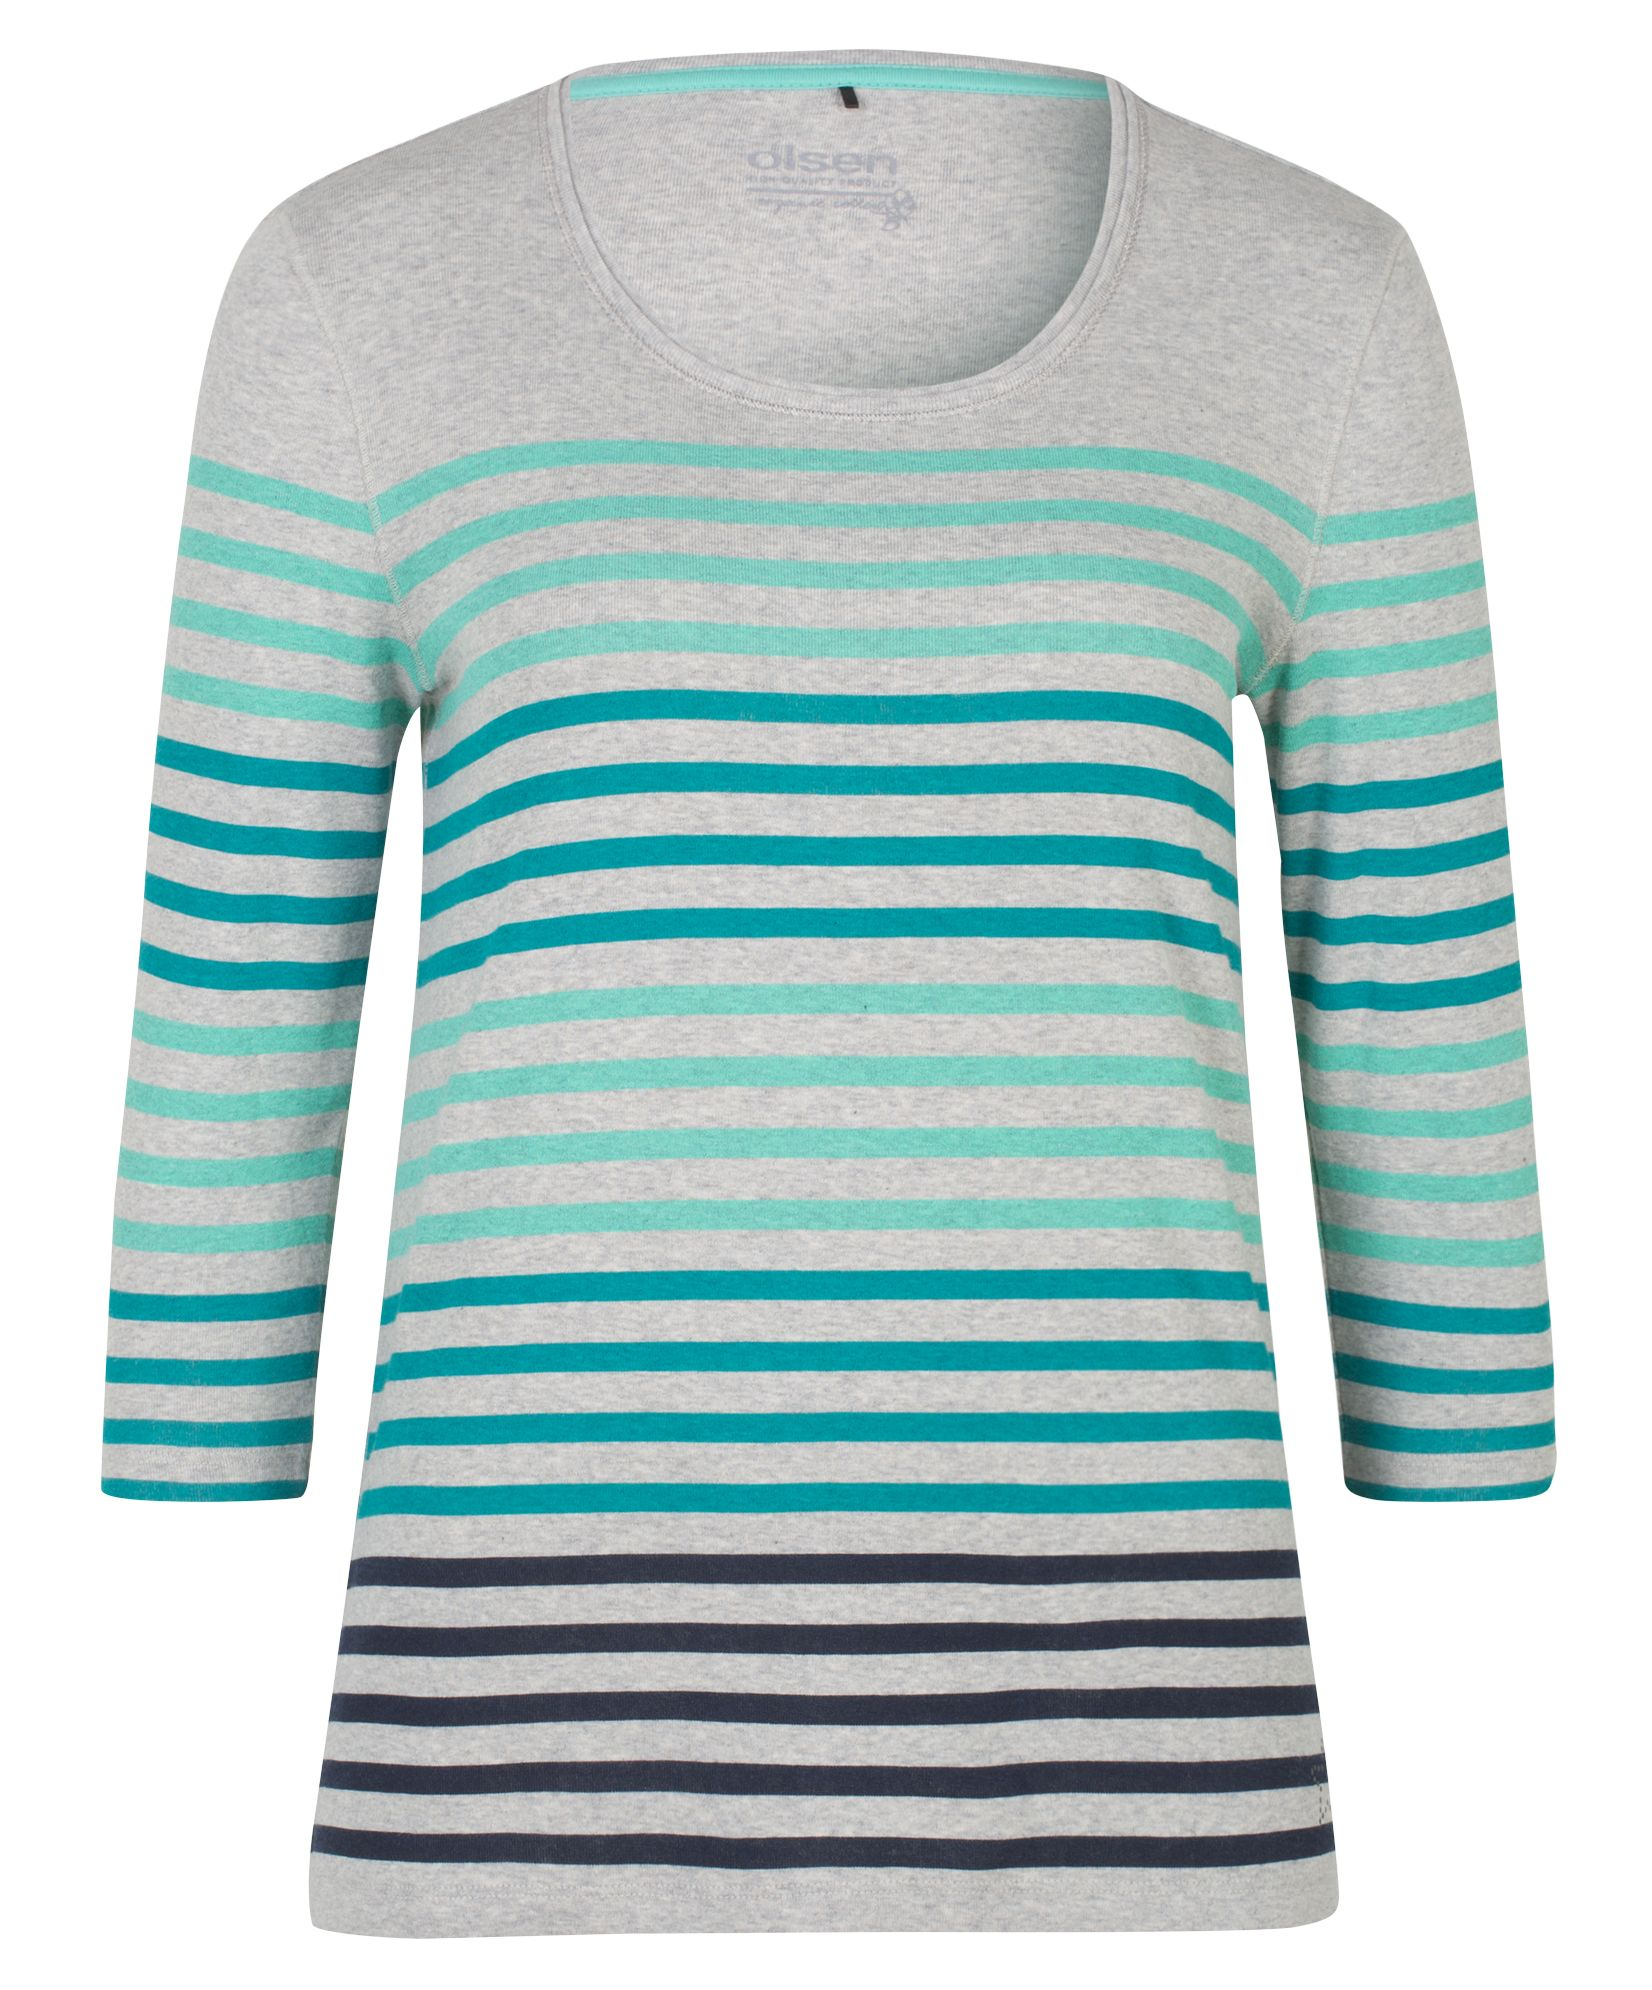 Olsen T-Shirt Multicolour Stripes, Jade